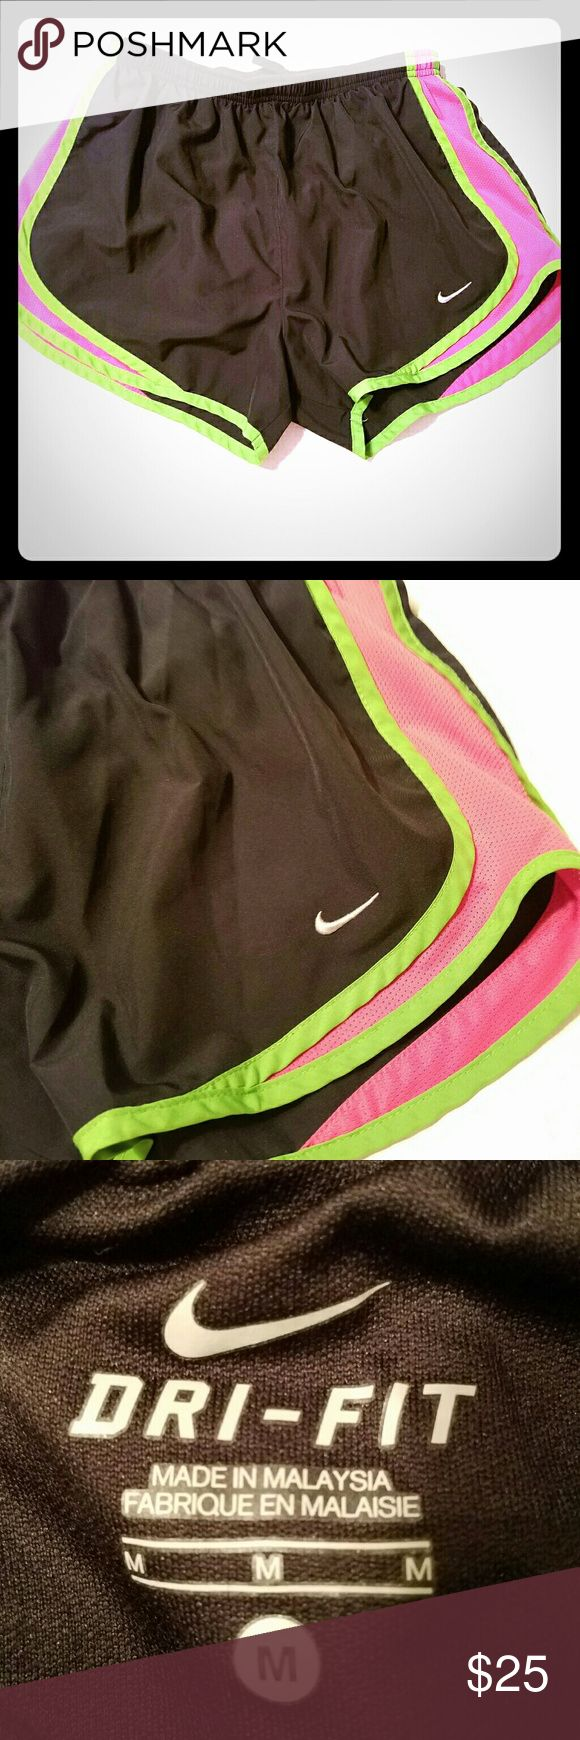 Size Medium Nike Dri Fit Tempo Shorts Nike Tempo shorts lined  Black, Hot Pink and green  Size Medium Nike Tempo  Shorts